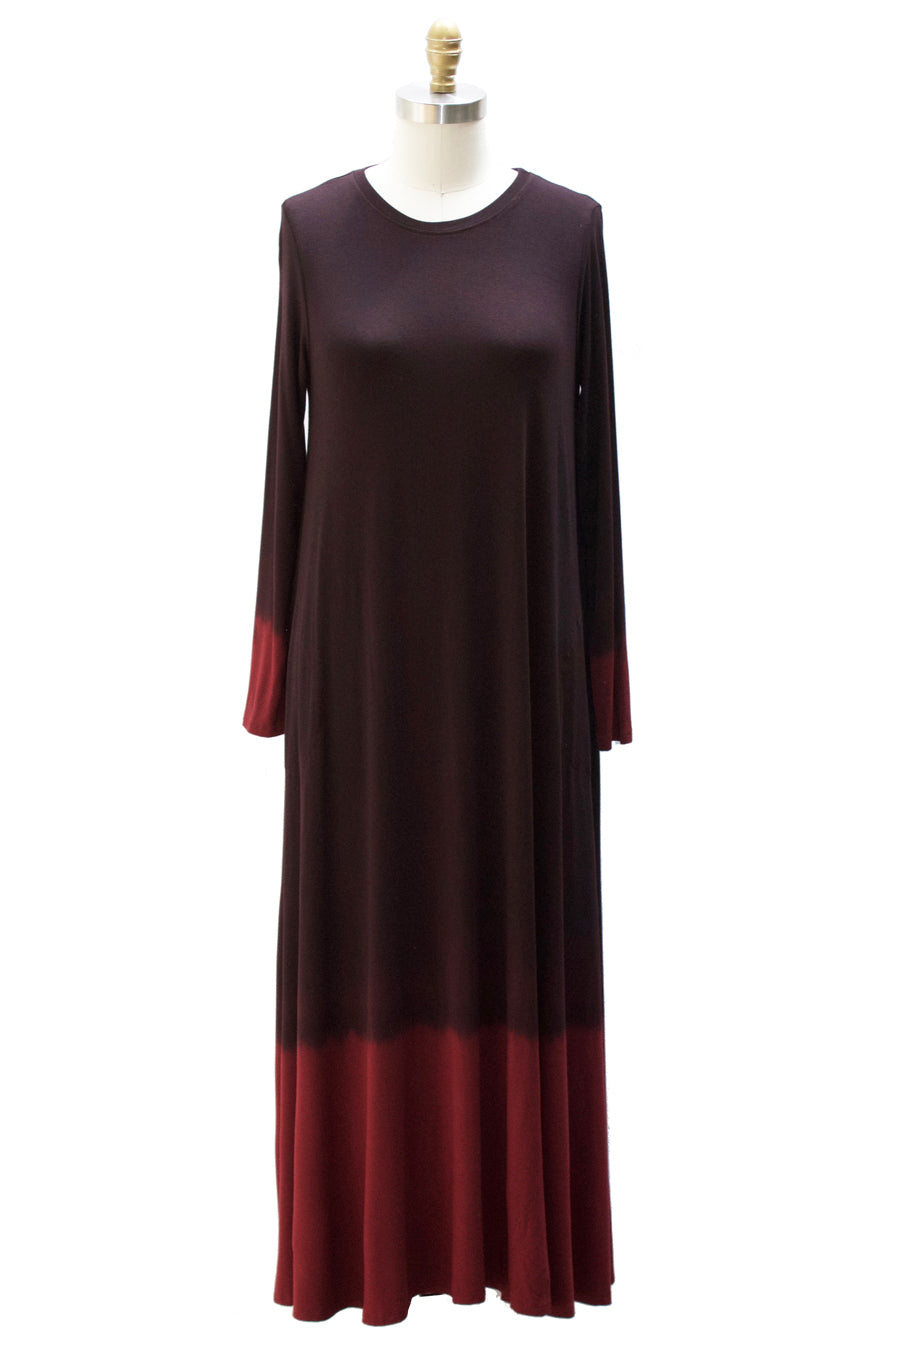 Dip Dye Capsule - Long Sleeve Maxi With Pockets - Sale